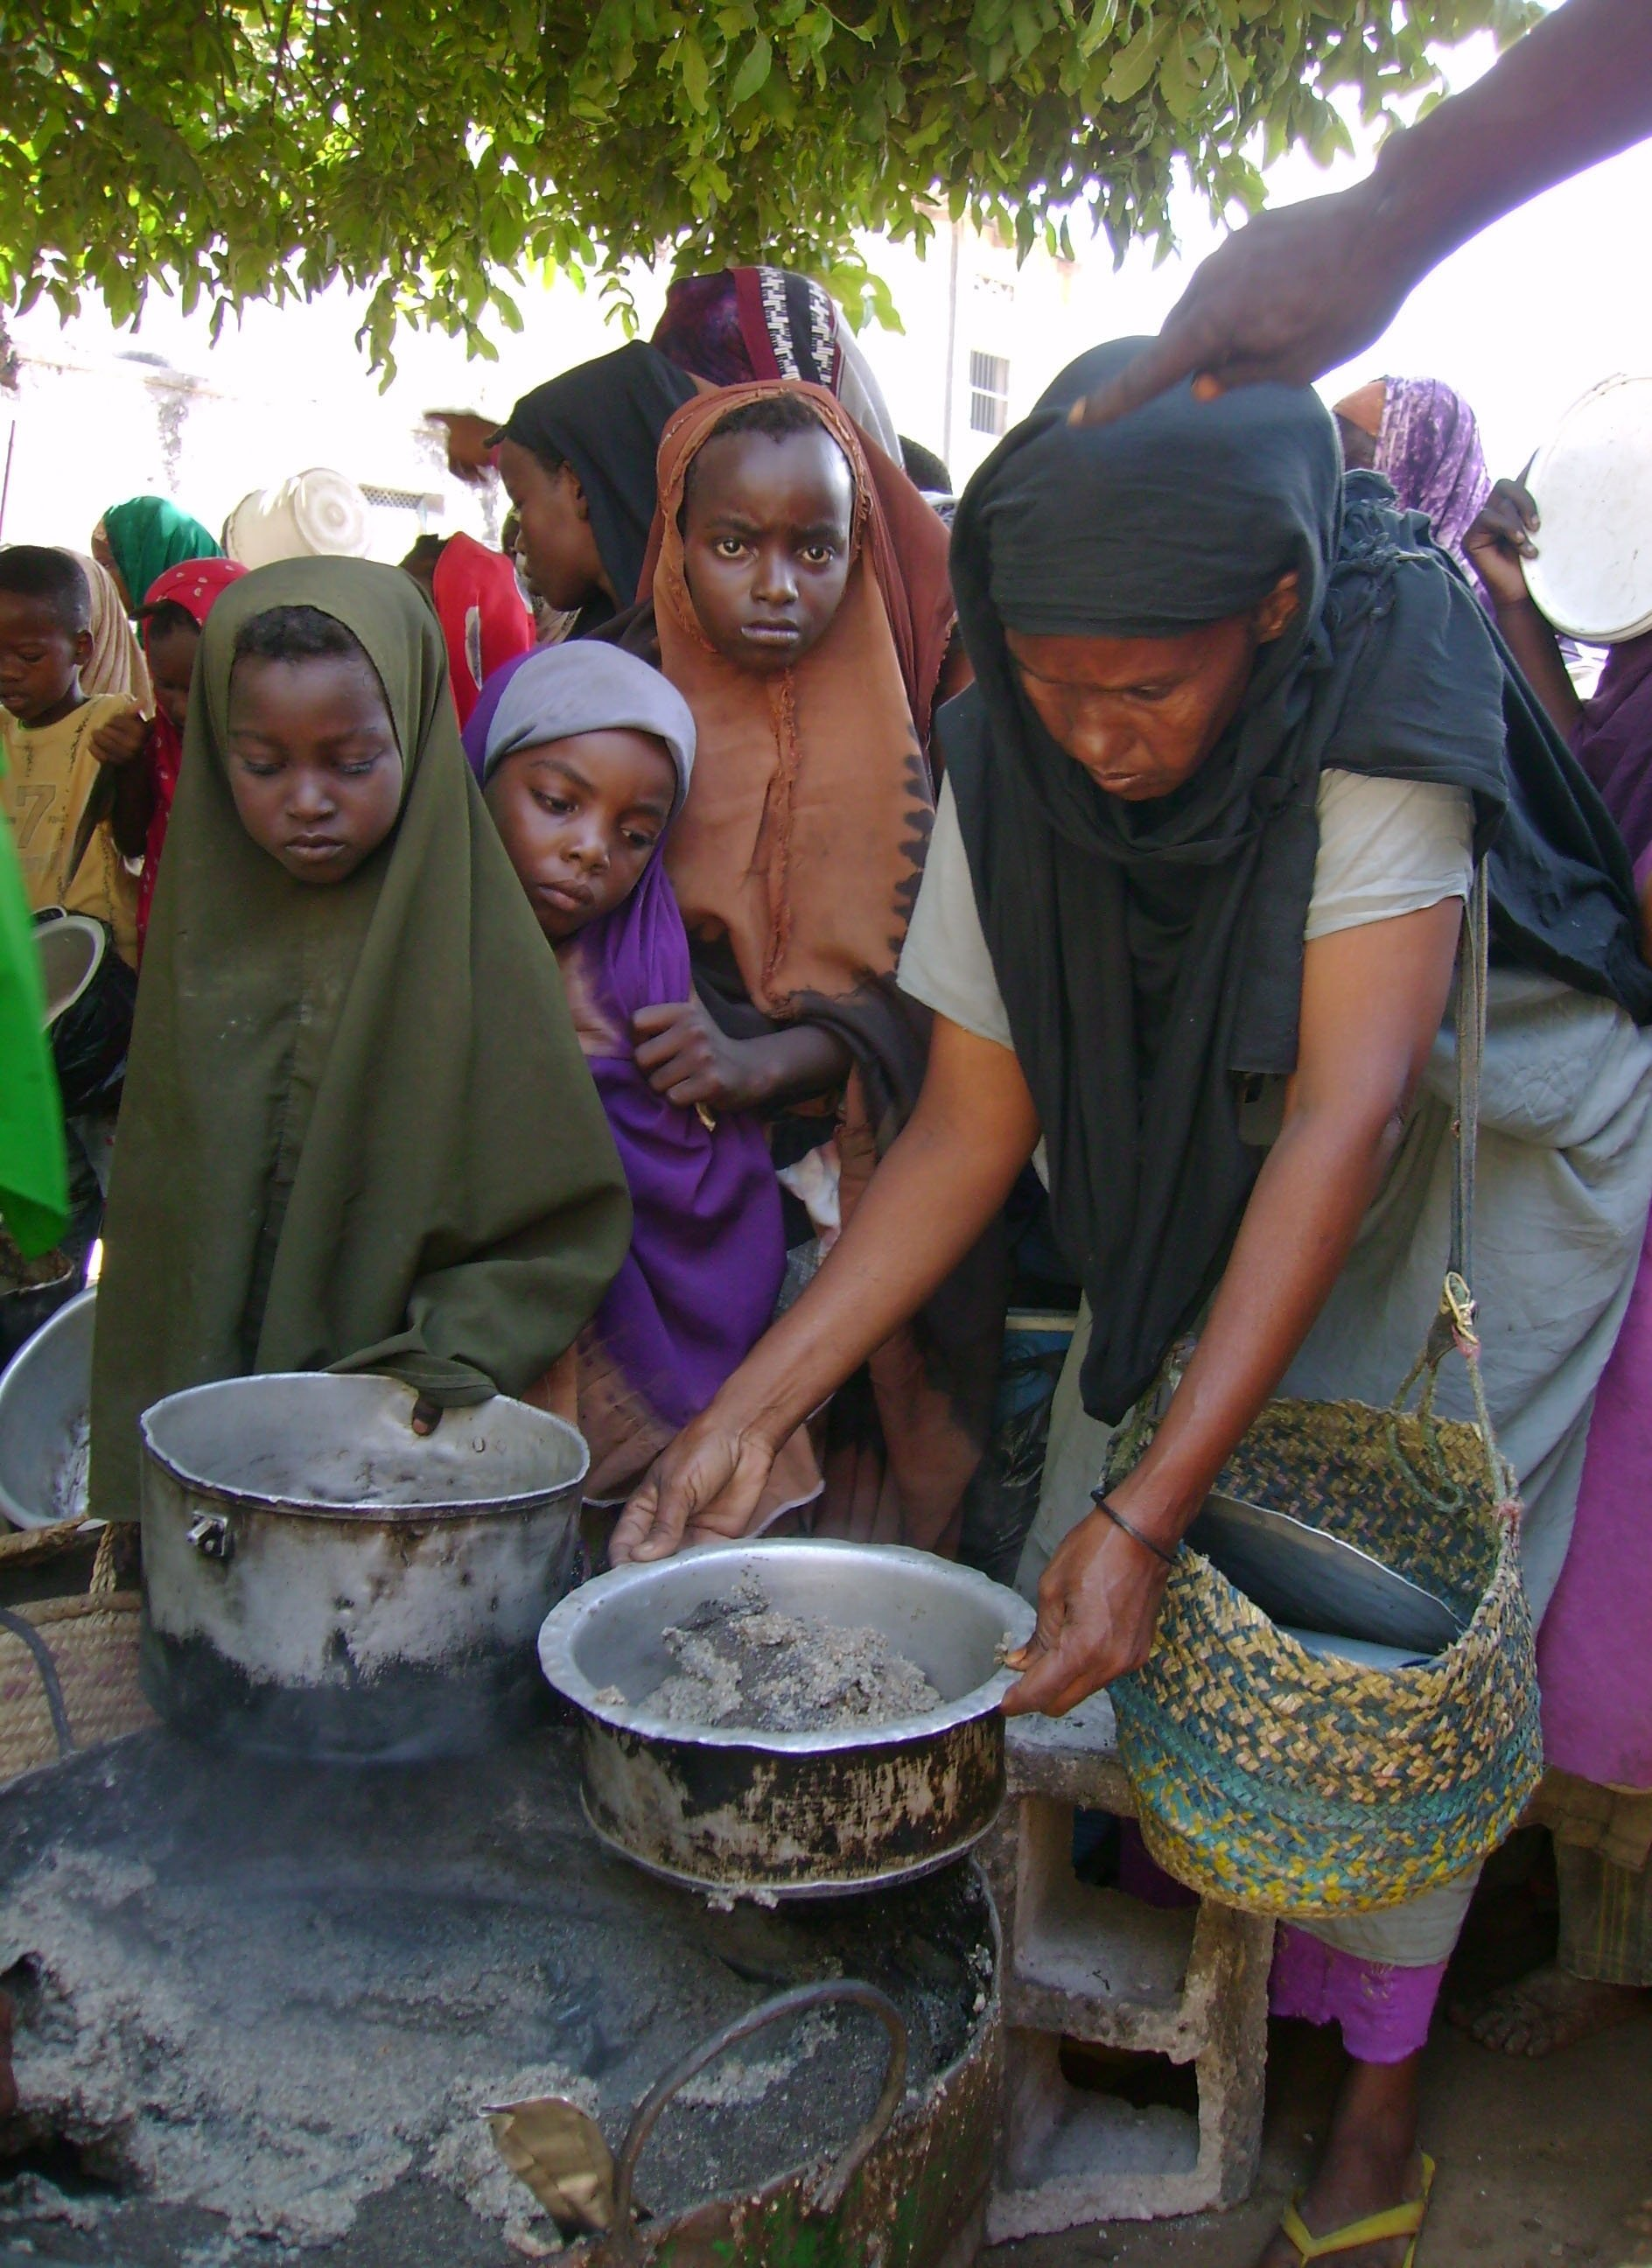 A Displaced Somali woman is given cooked food during a distribution organised by the UN World Food Programme, USAID and other local and international NGOs, in Mogadishu Somalia on September 2008.